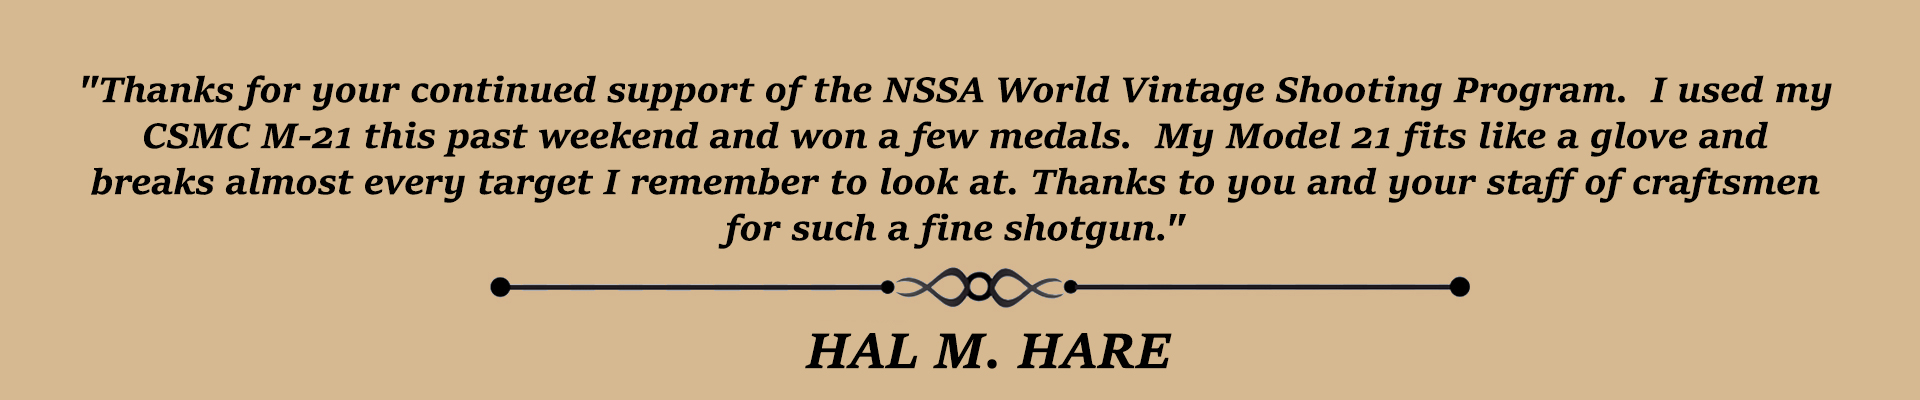 hal-m.-hare-quotes.jpg